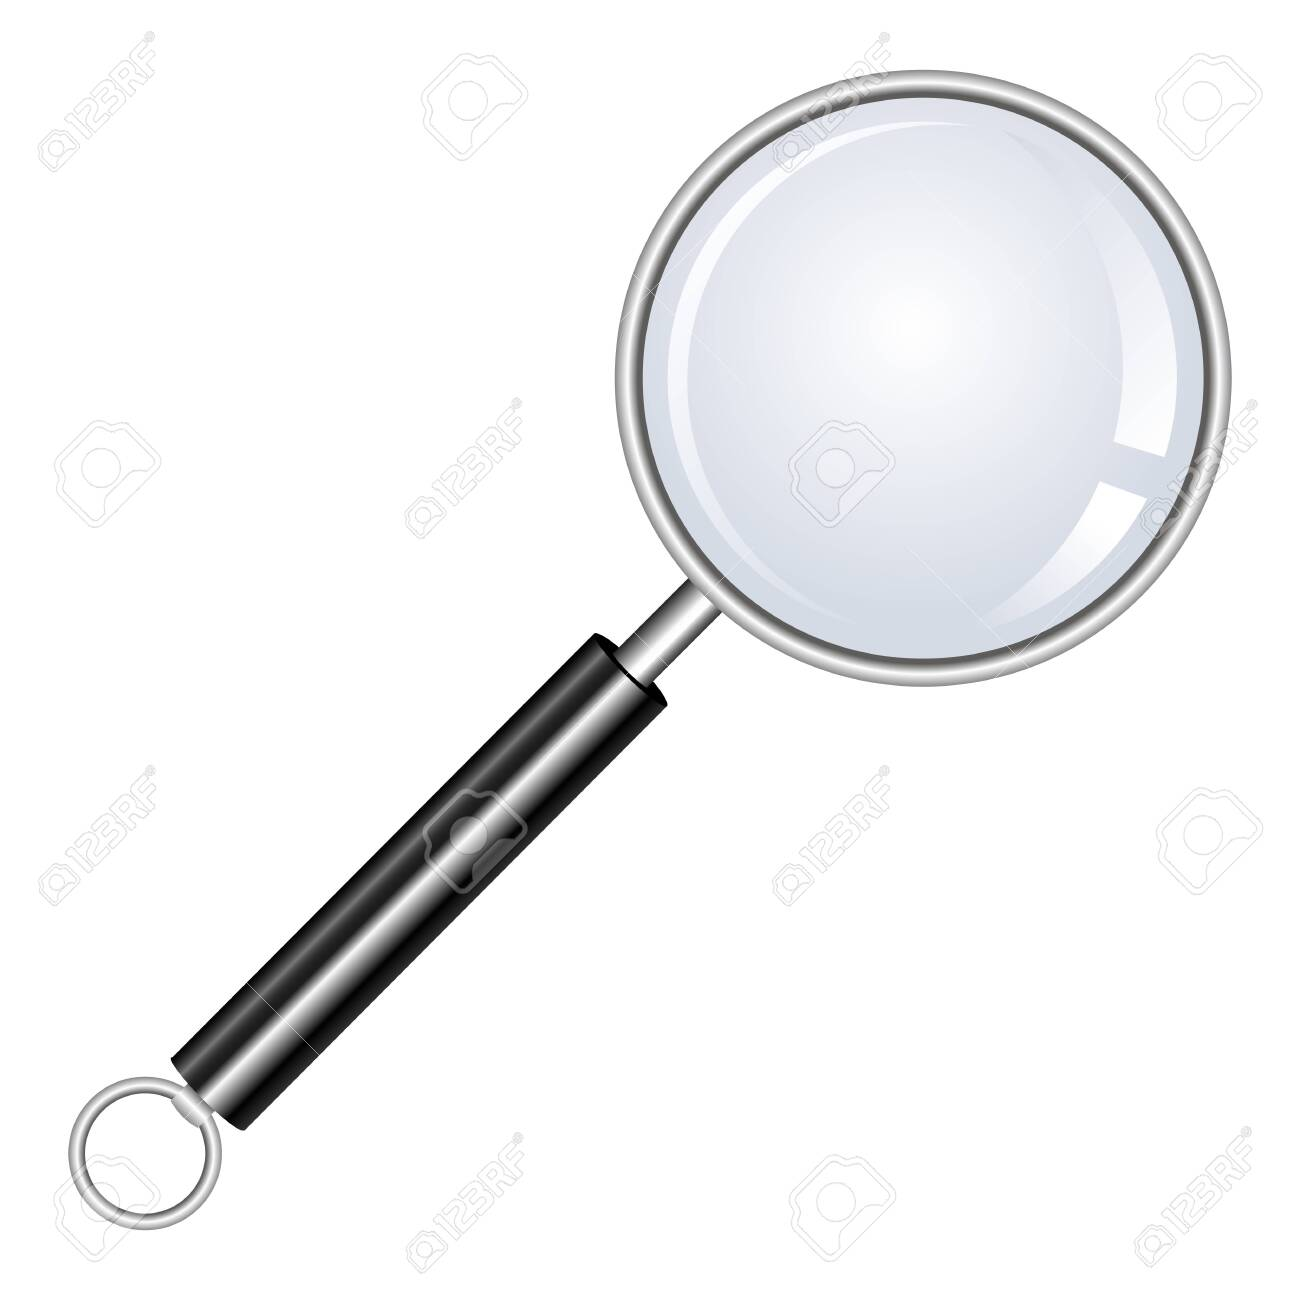 Magnifying glass vector design illustration isolated on white background - 151091348